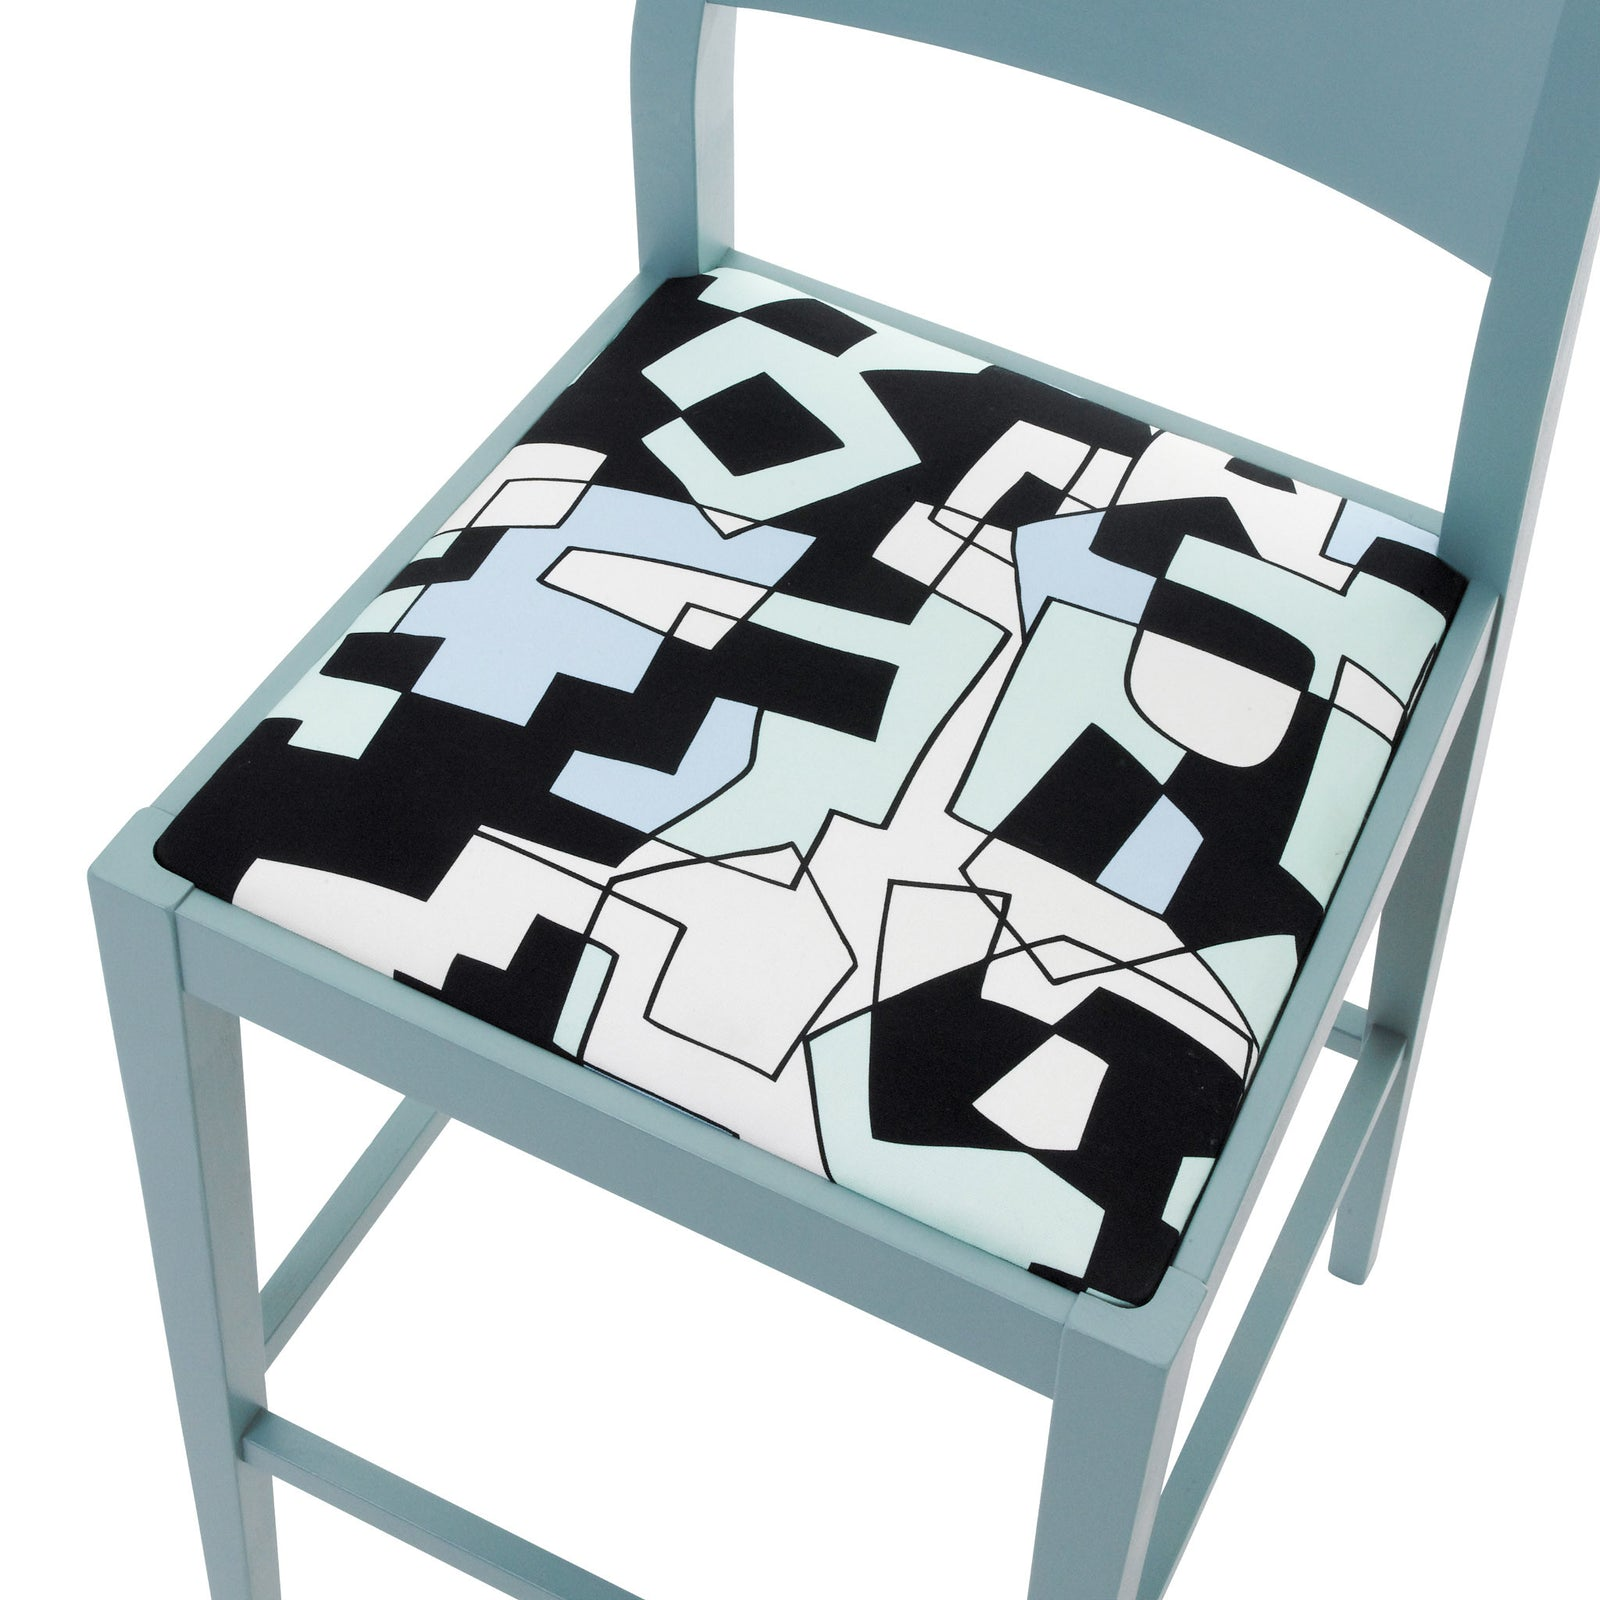 Jon Burerman Doodle fabric on a James Barstool painted in Room Blue eggshell.